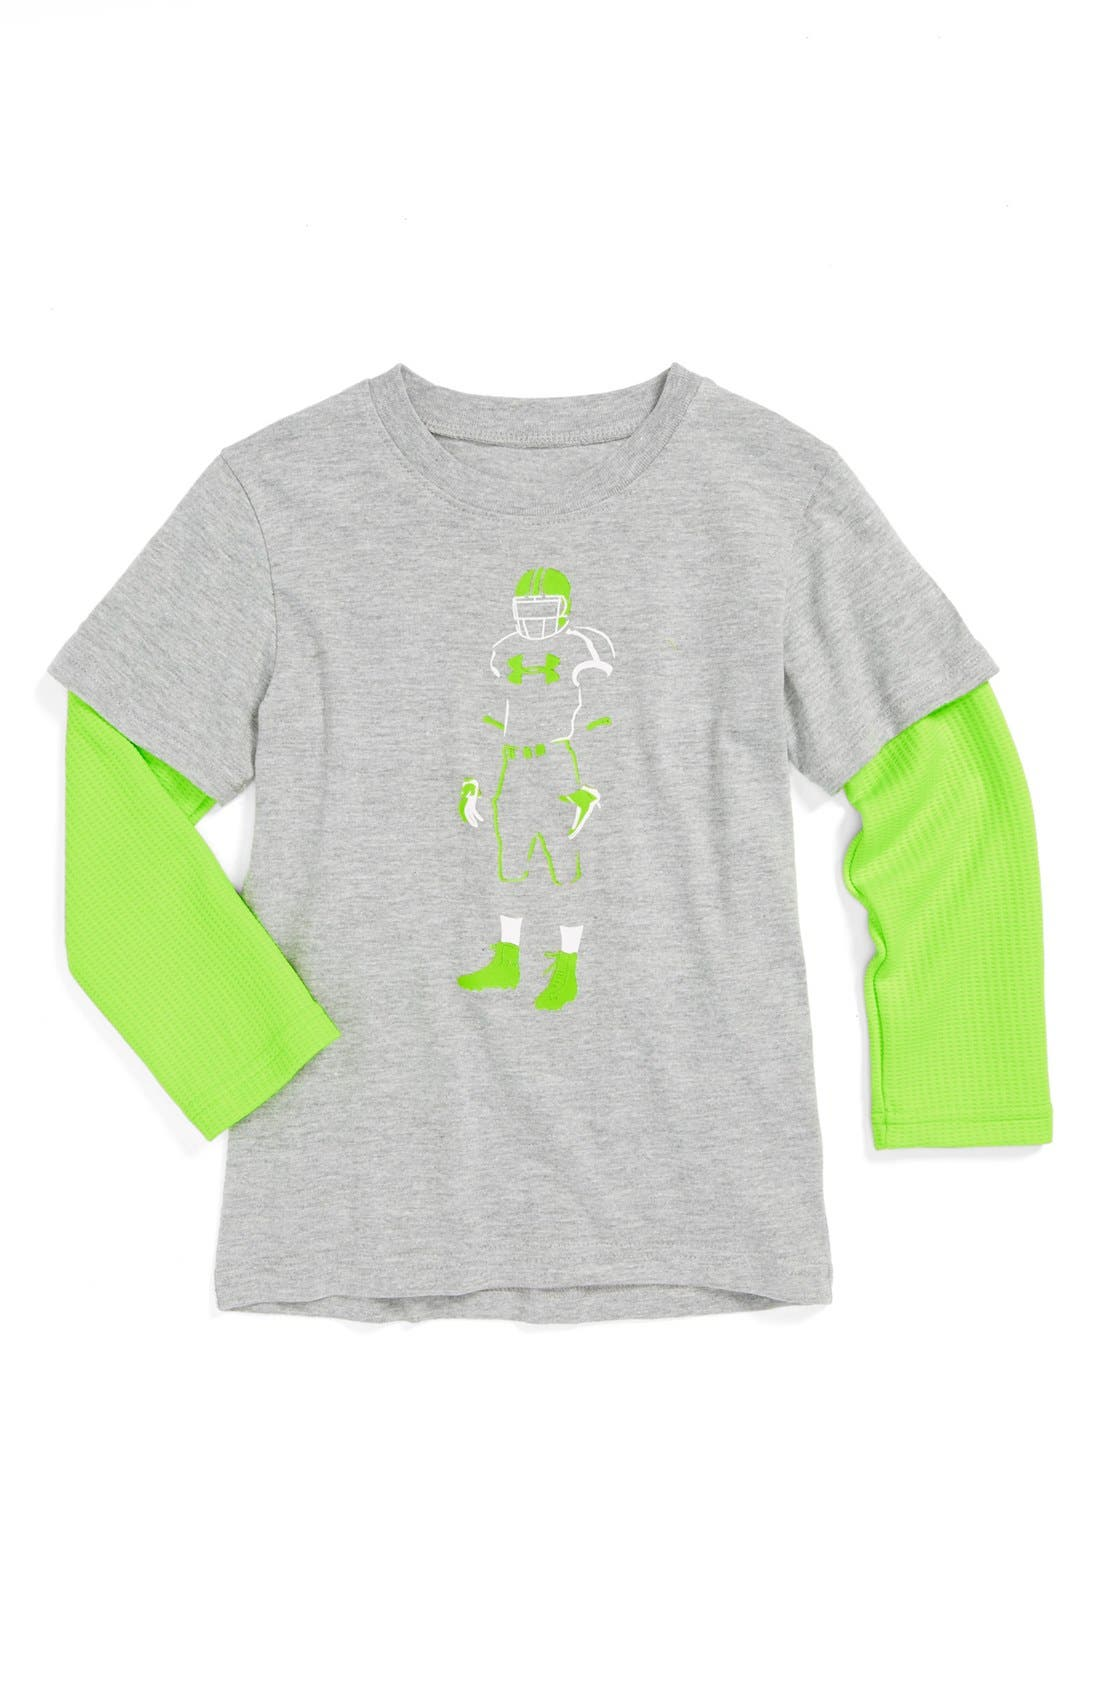 Main Image - Under Armour 'Football Glow Slider' AllSeasonGear® T-Shirt (Toddler Boys)